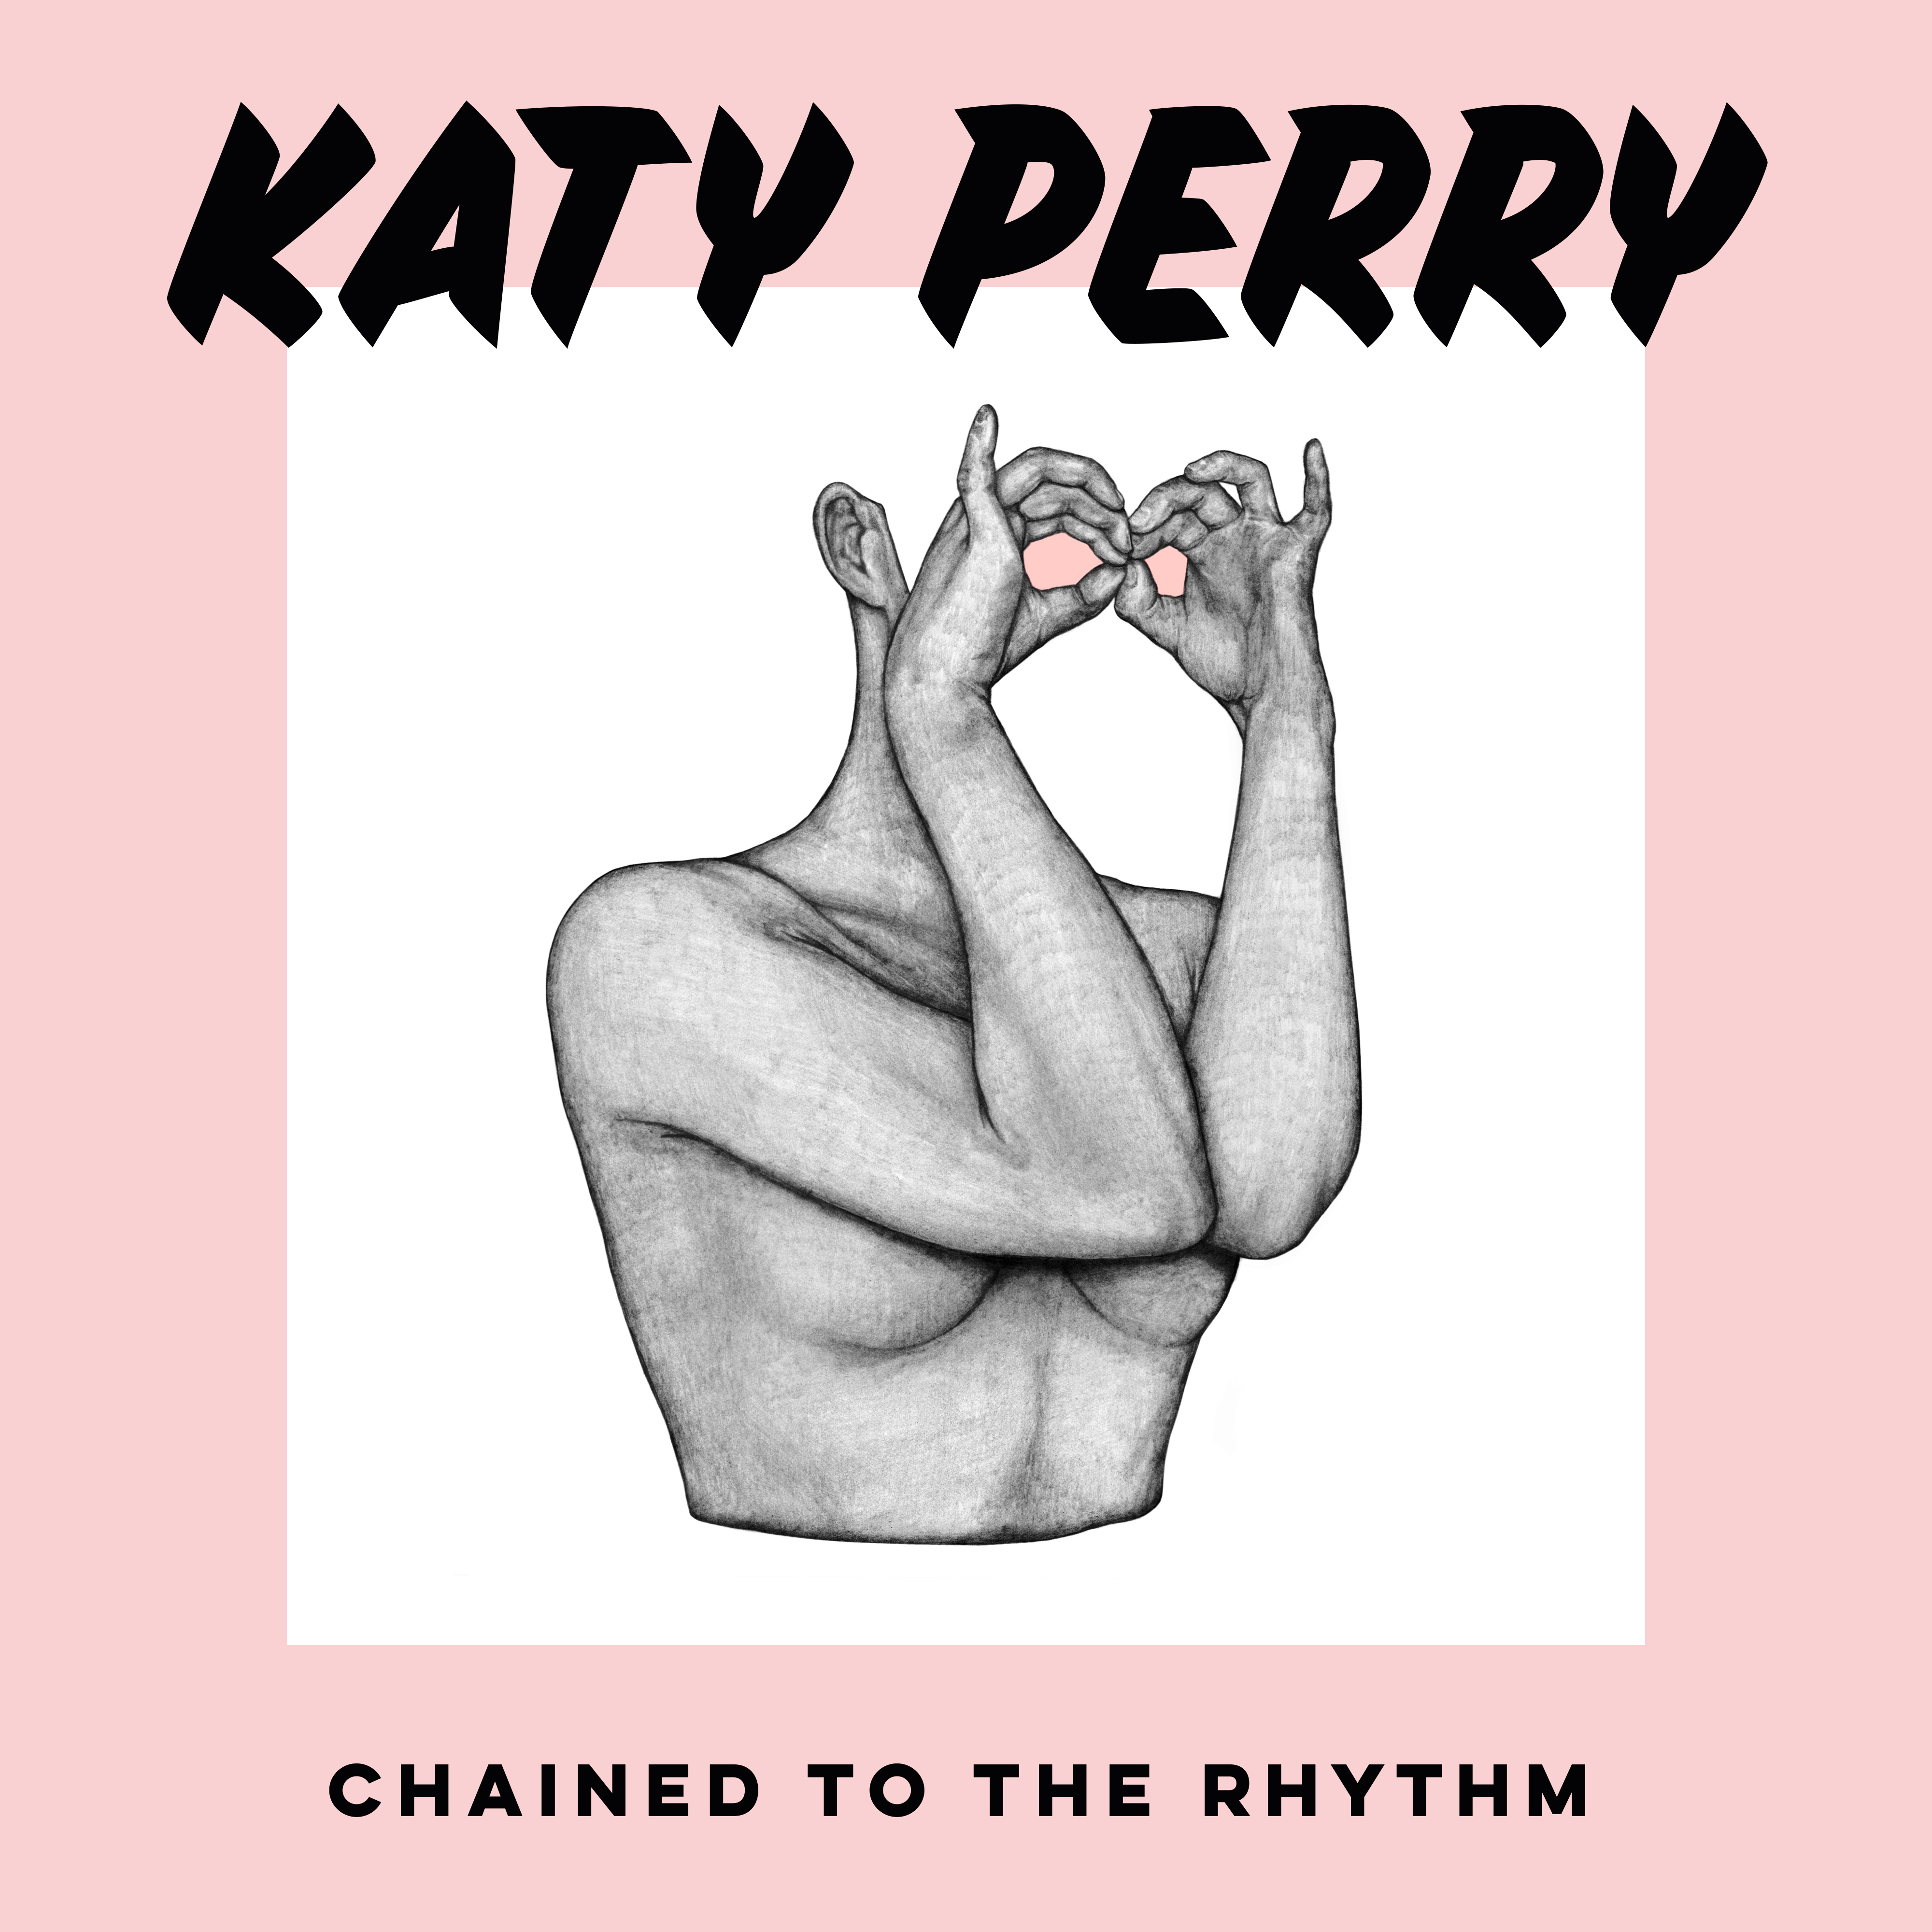 Cover: KATY PERRY FEAT. SKIP MARLEY, CHAINED TO THE RHYTHM